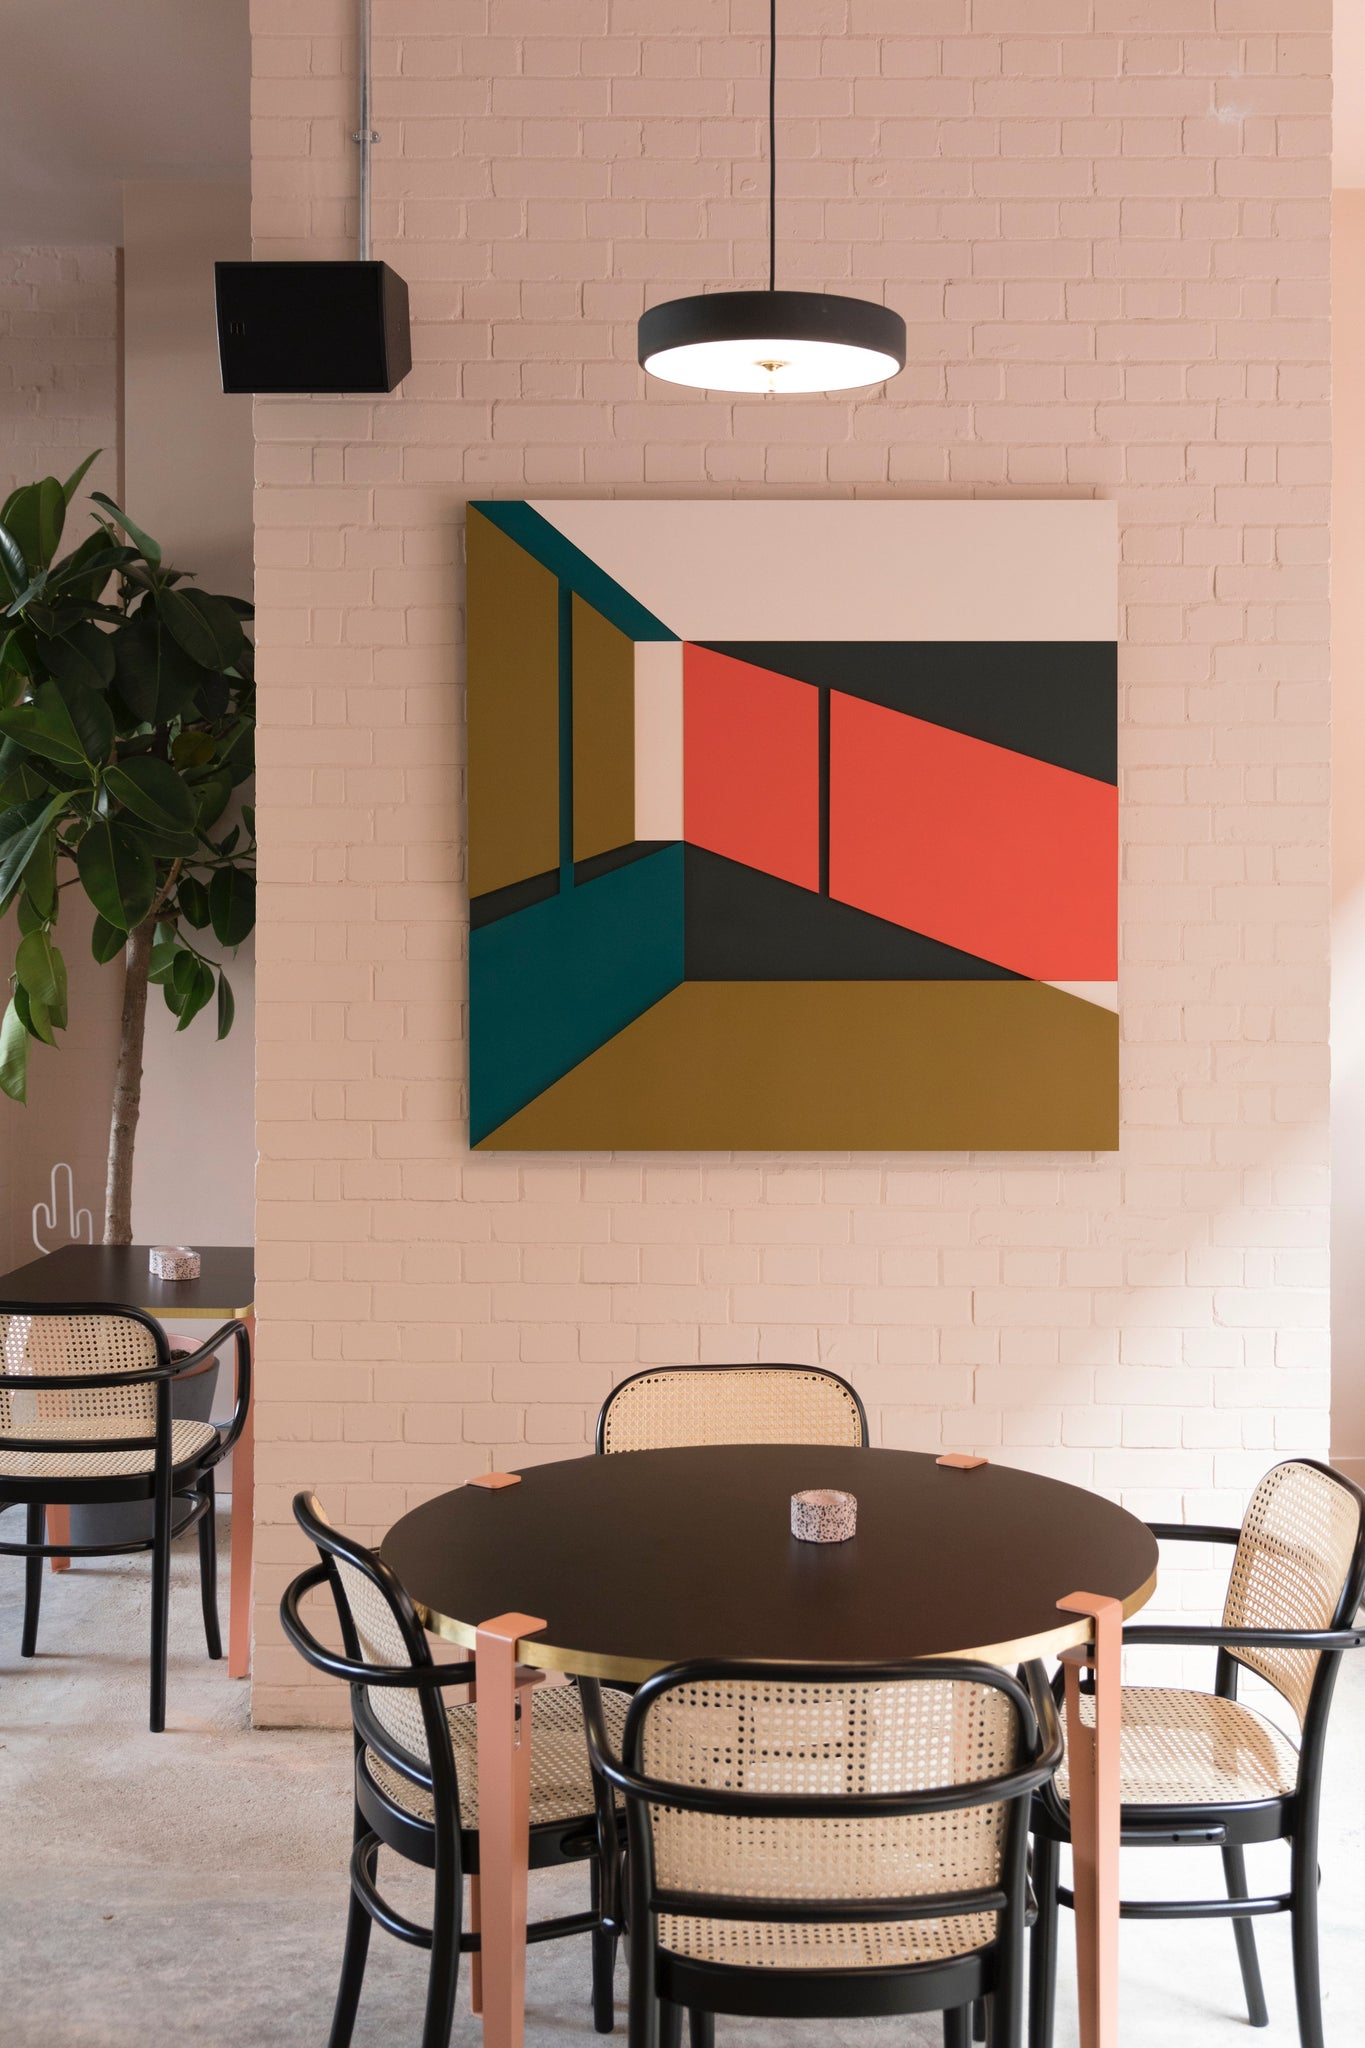 ABSTRACT PAINTING | DYKE & DEAN